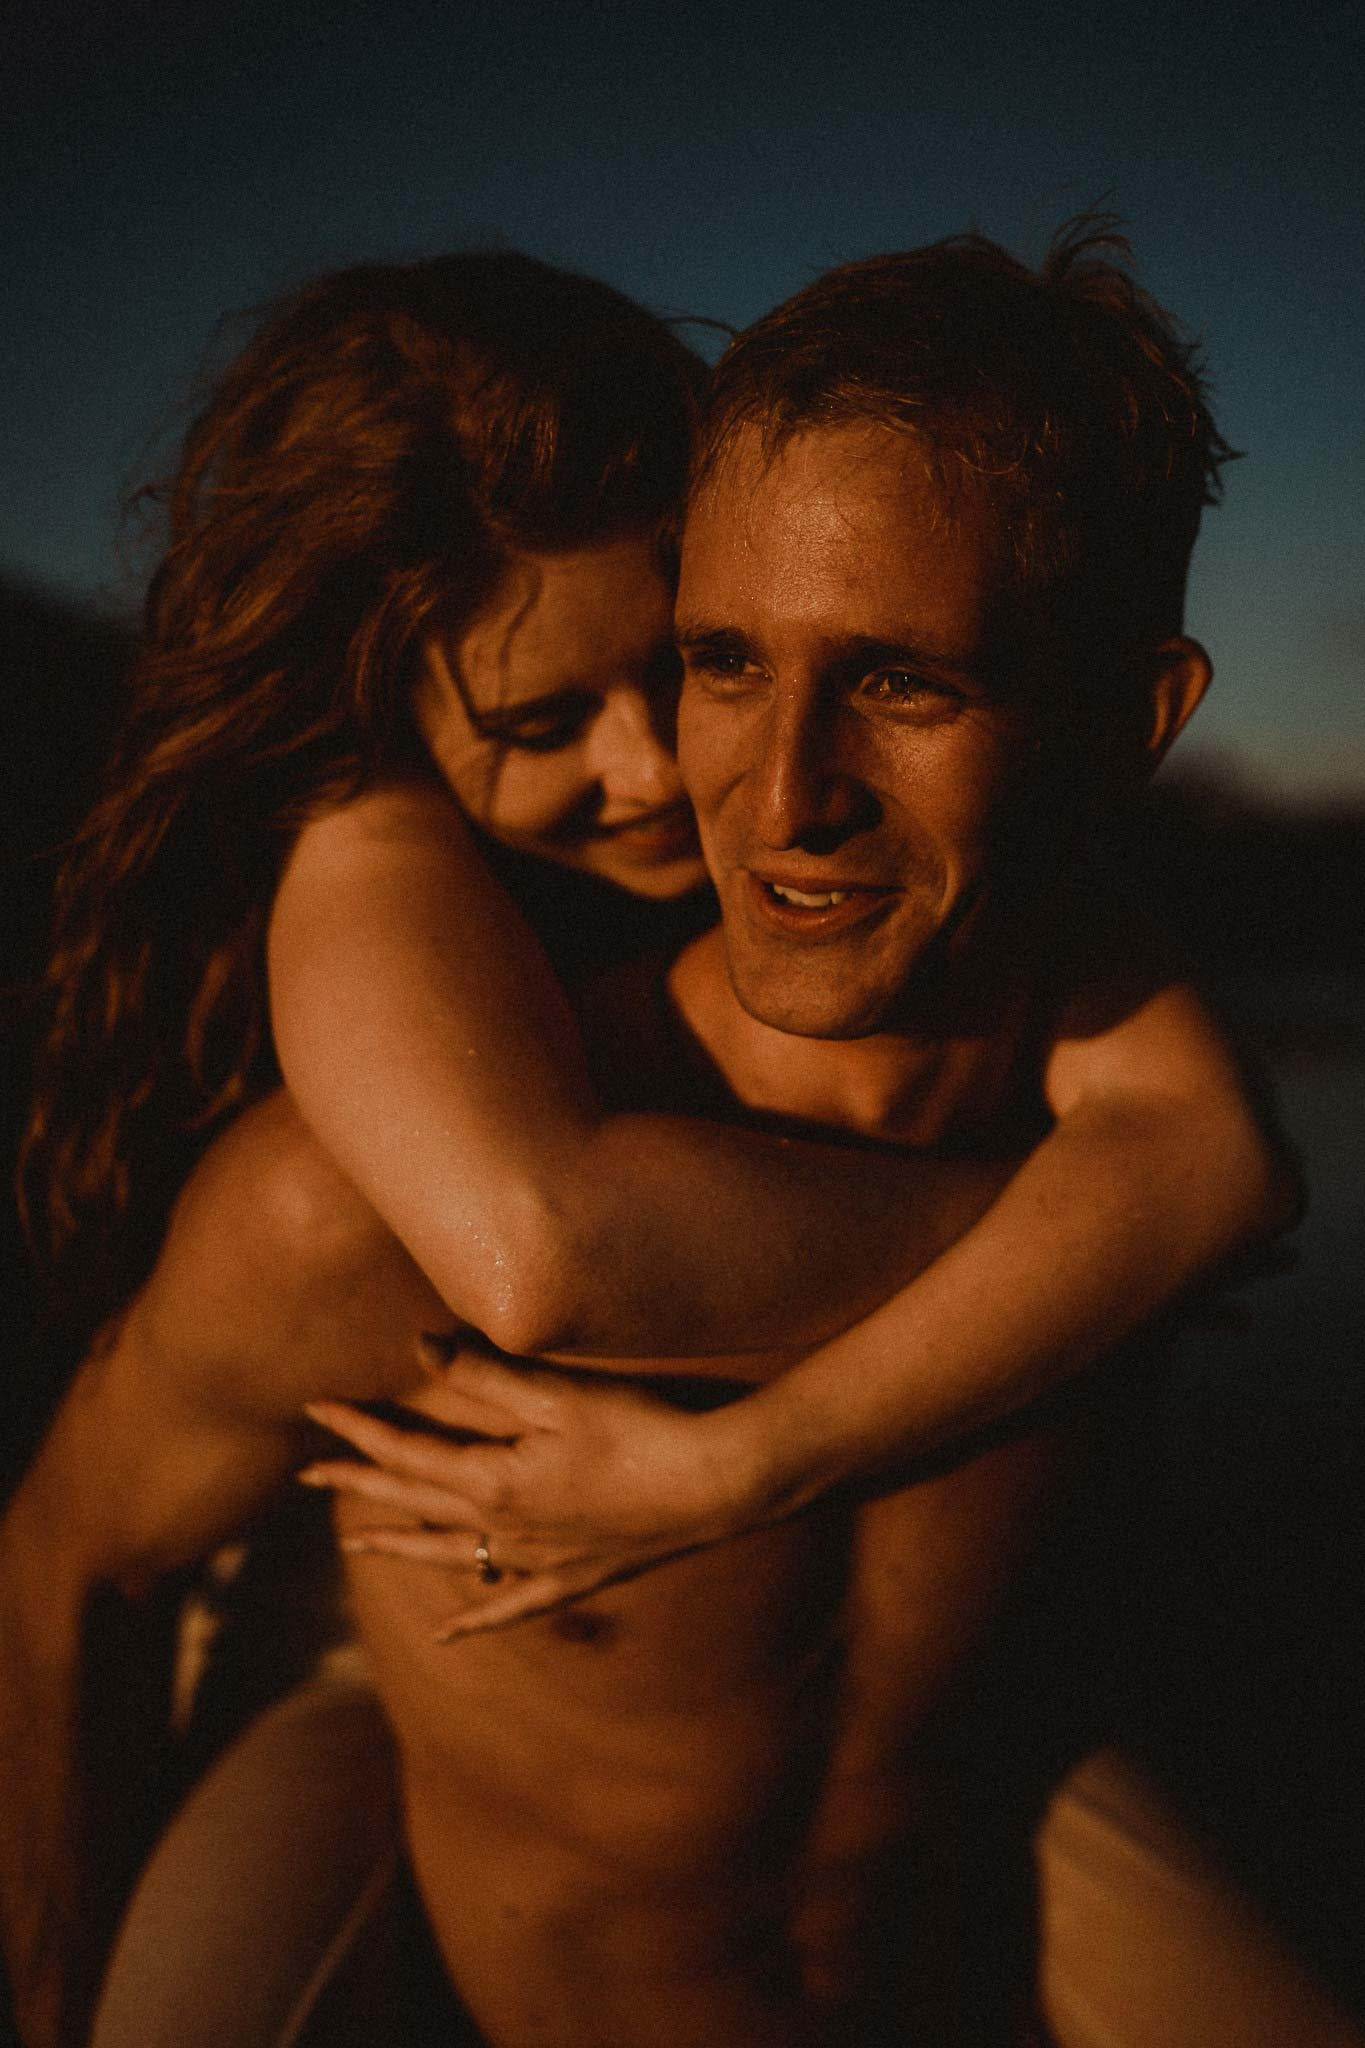 A Couple having a piggyback ride across the beach - full of smiles as sunset goes down